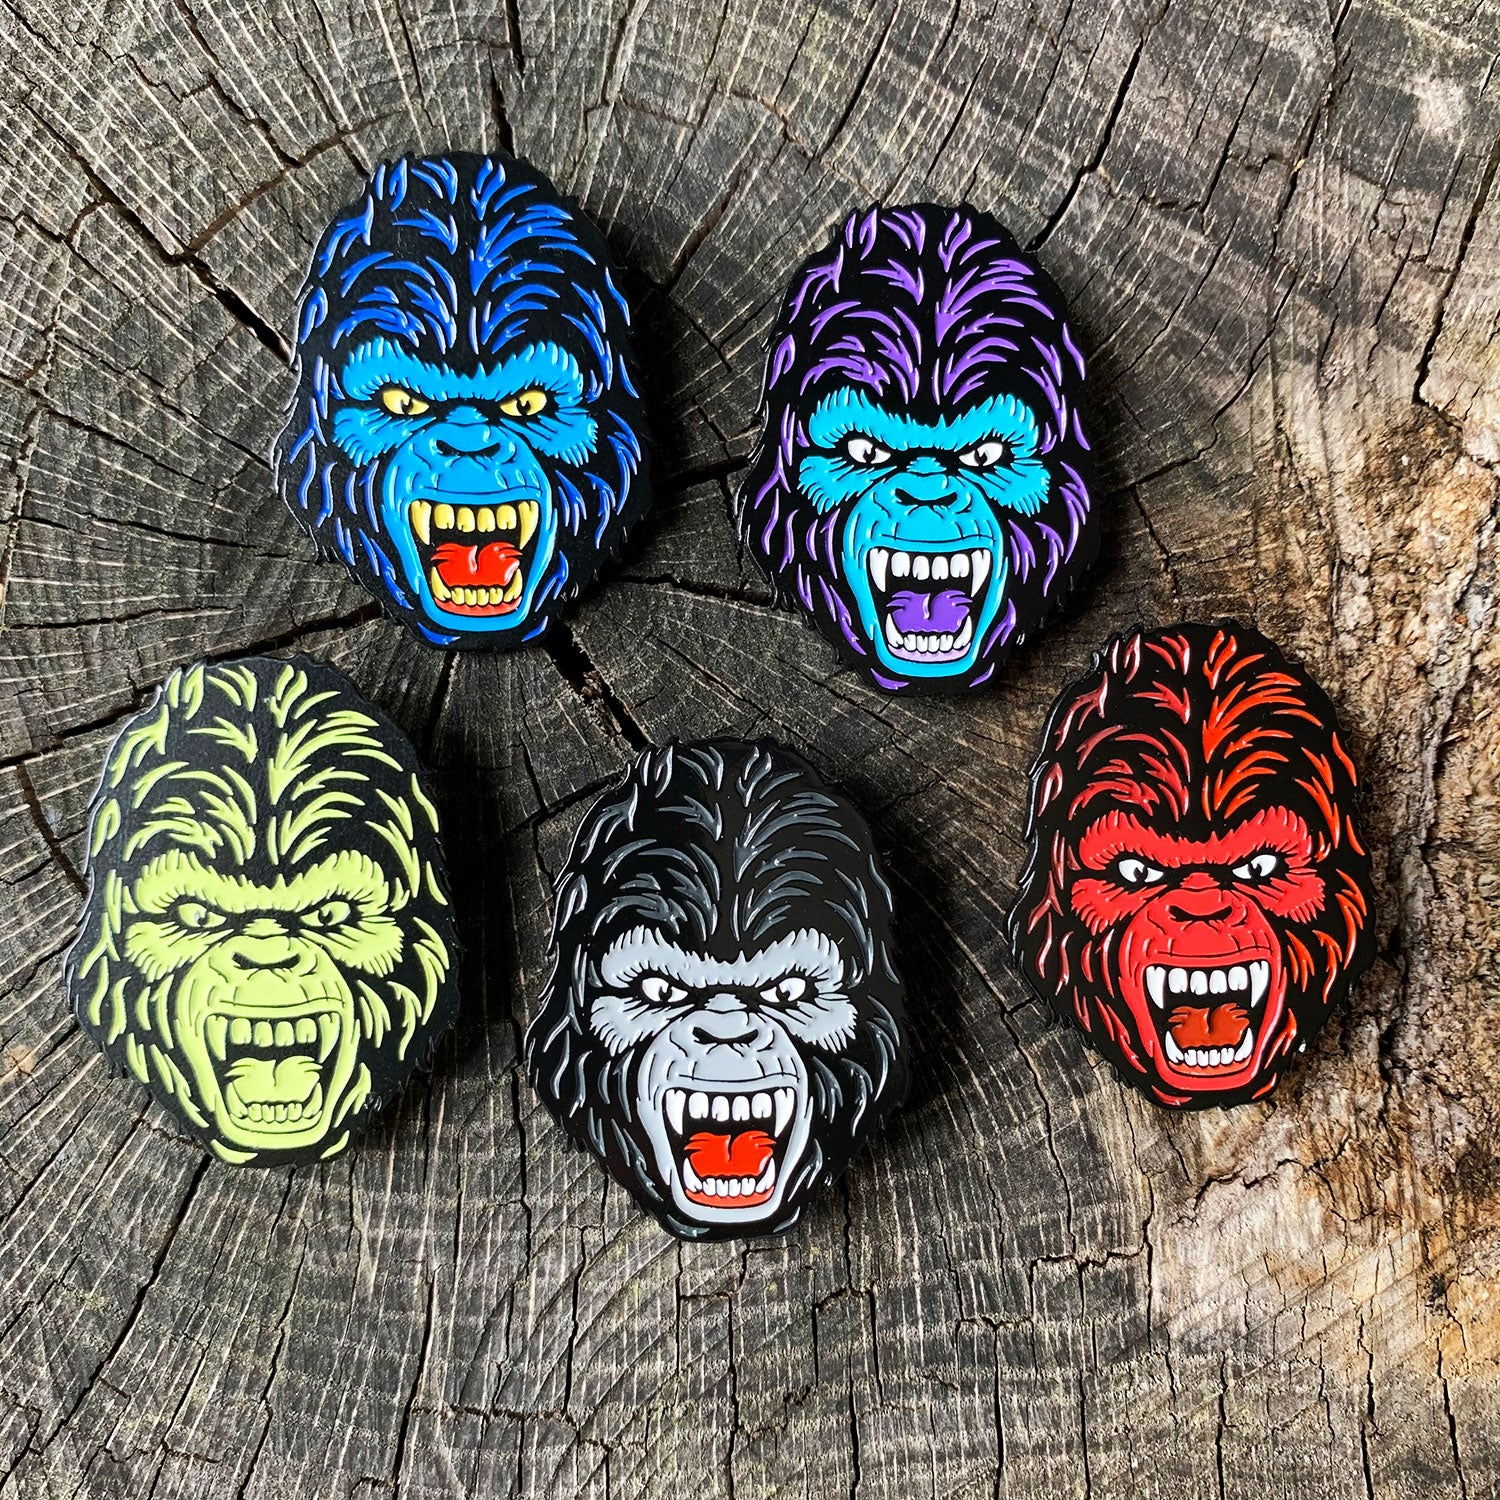 Kaiju 20XX Enamel Pin - Set of 5